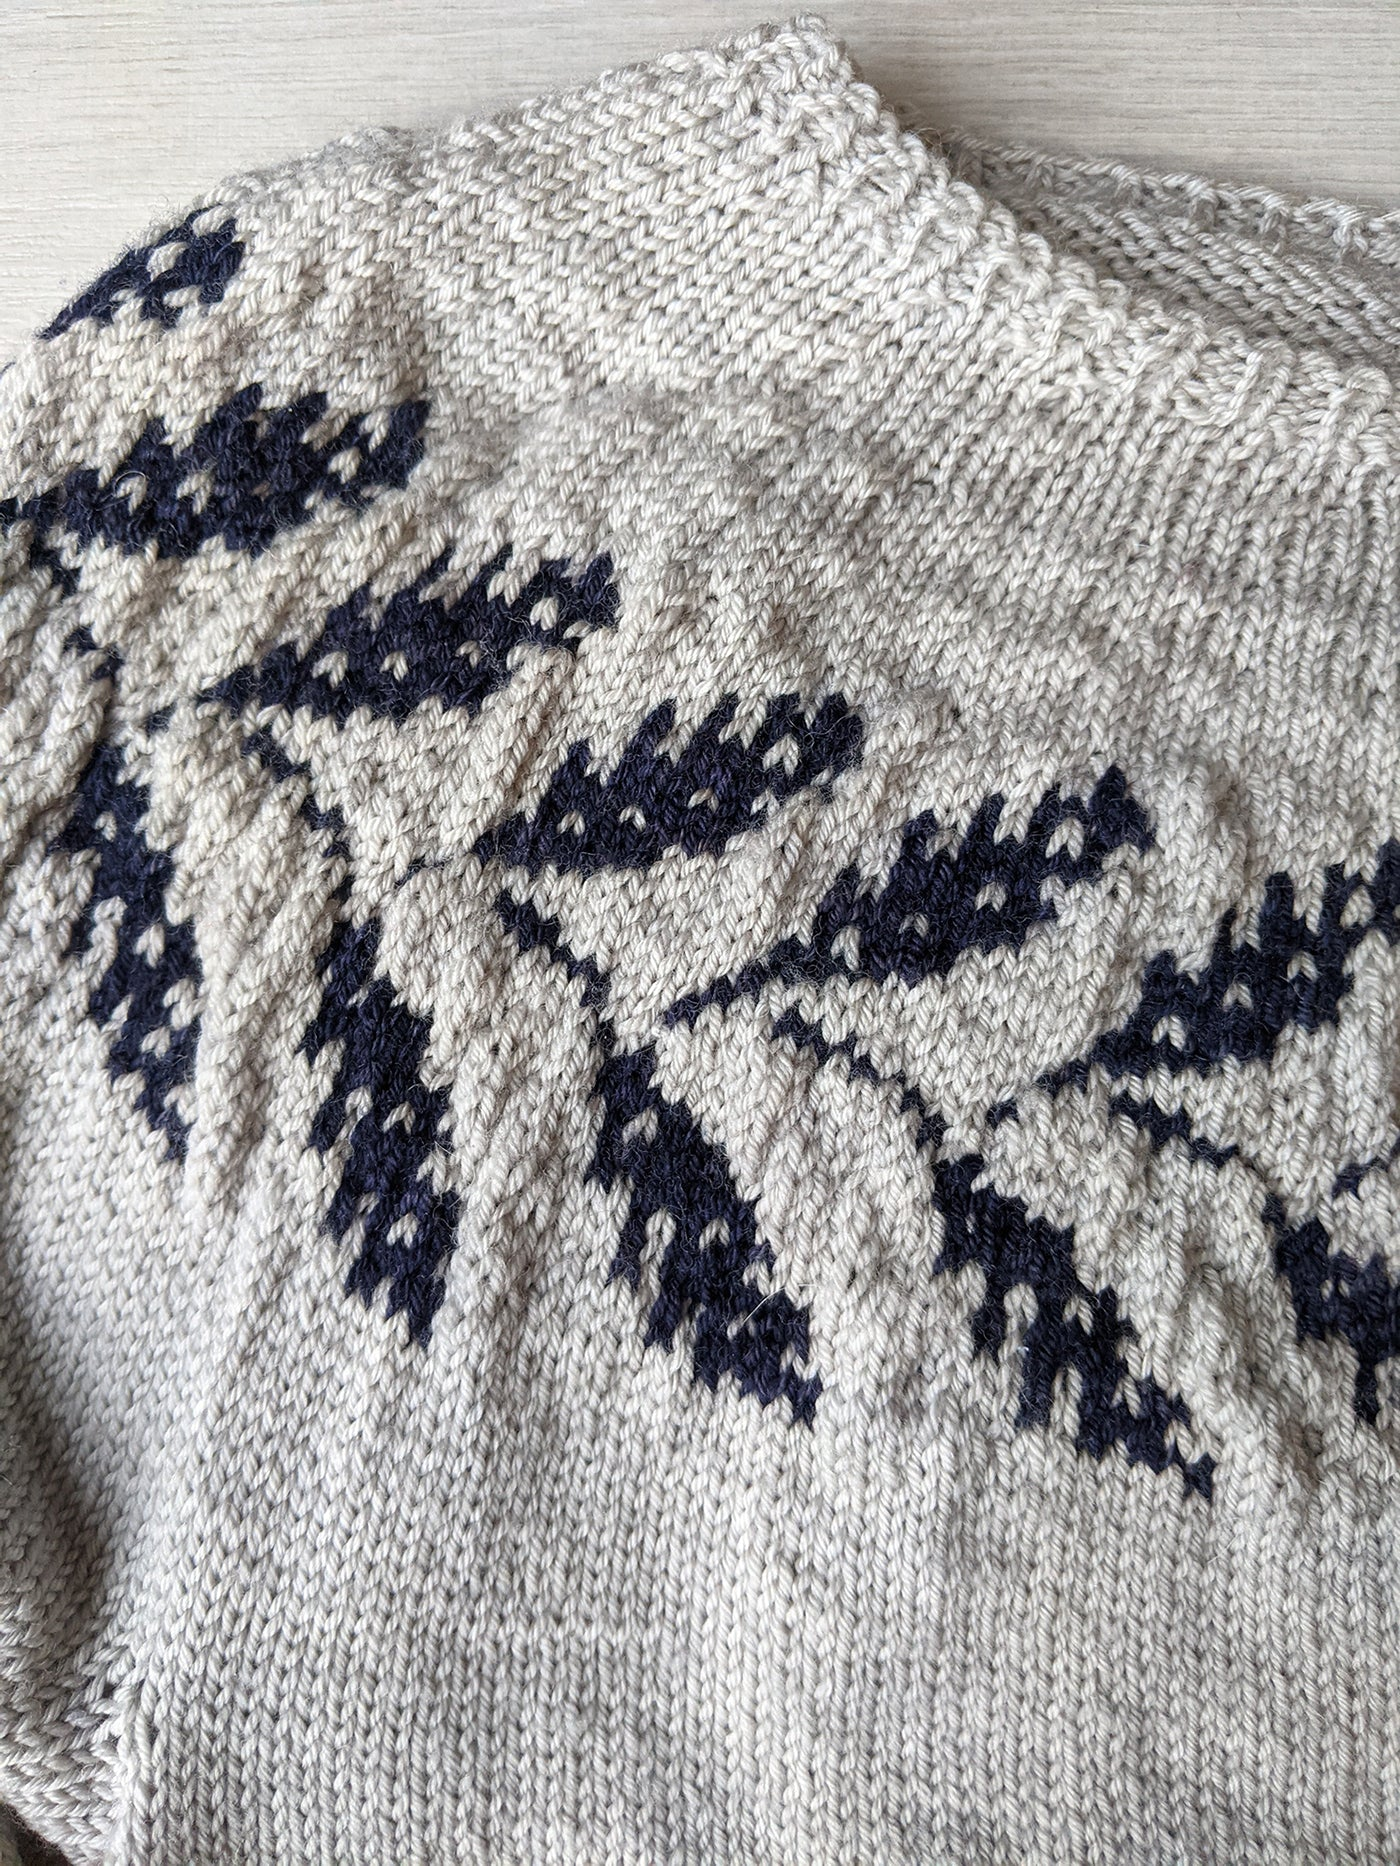 This is a detail shot of the intricate knit design along the collar of the sweater